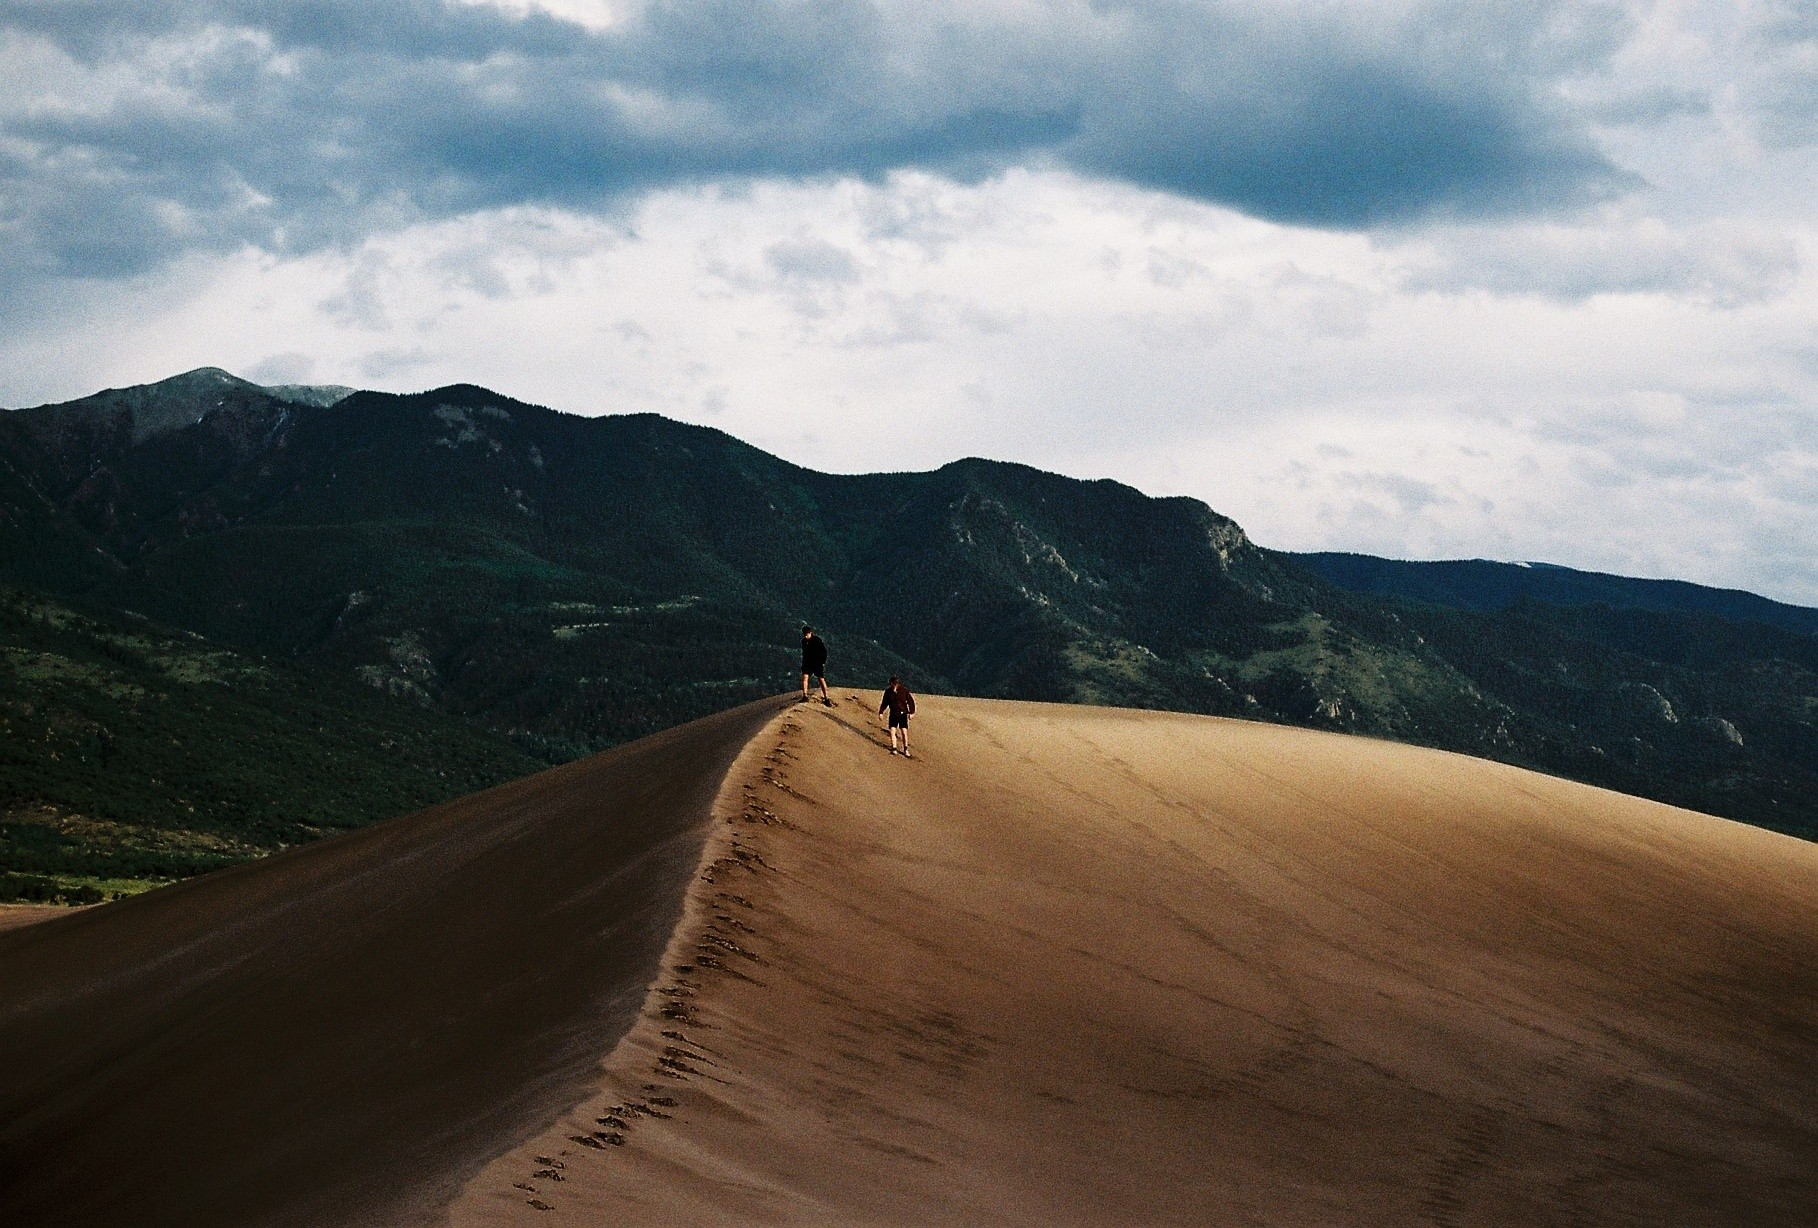 Great sand dunes, Colorado USA